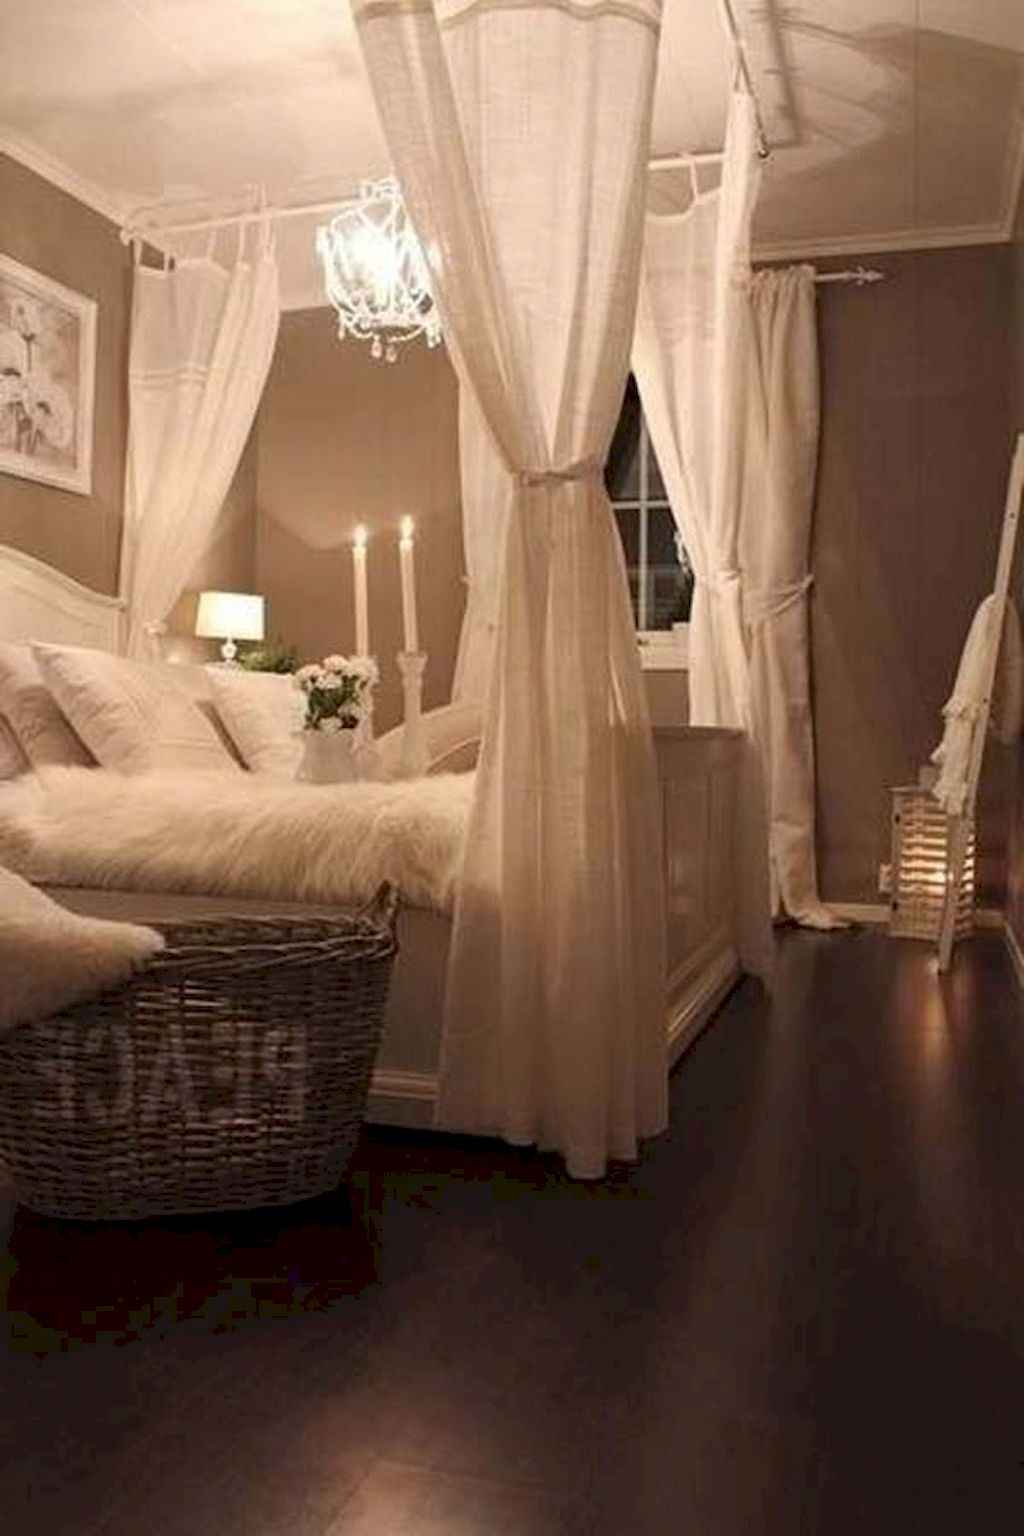 Awesome bedroom decoration ideas (35)